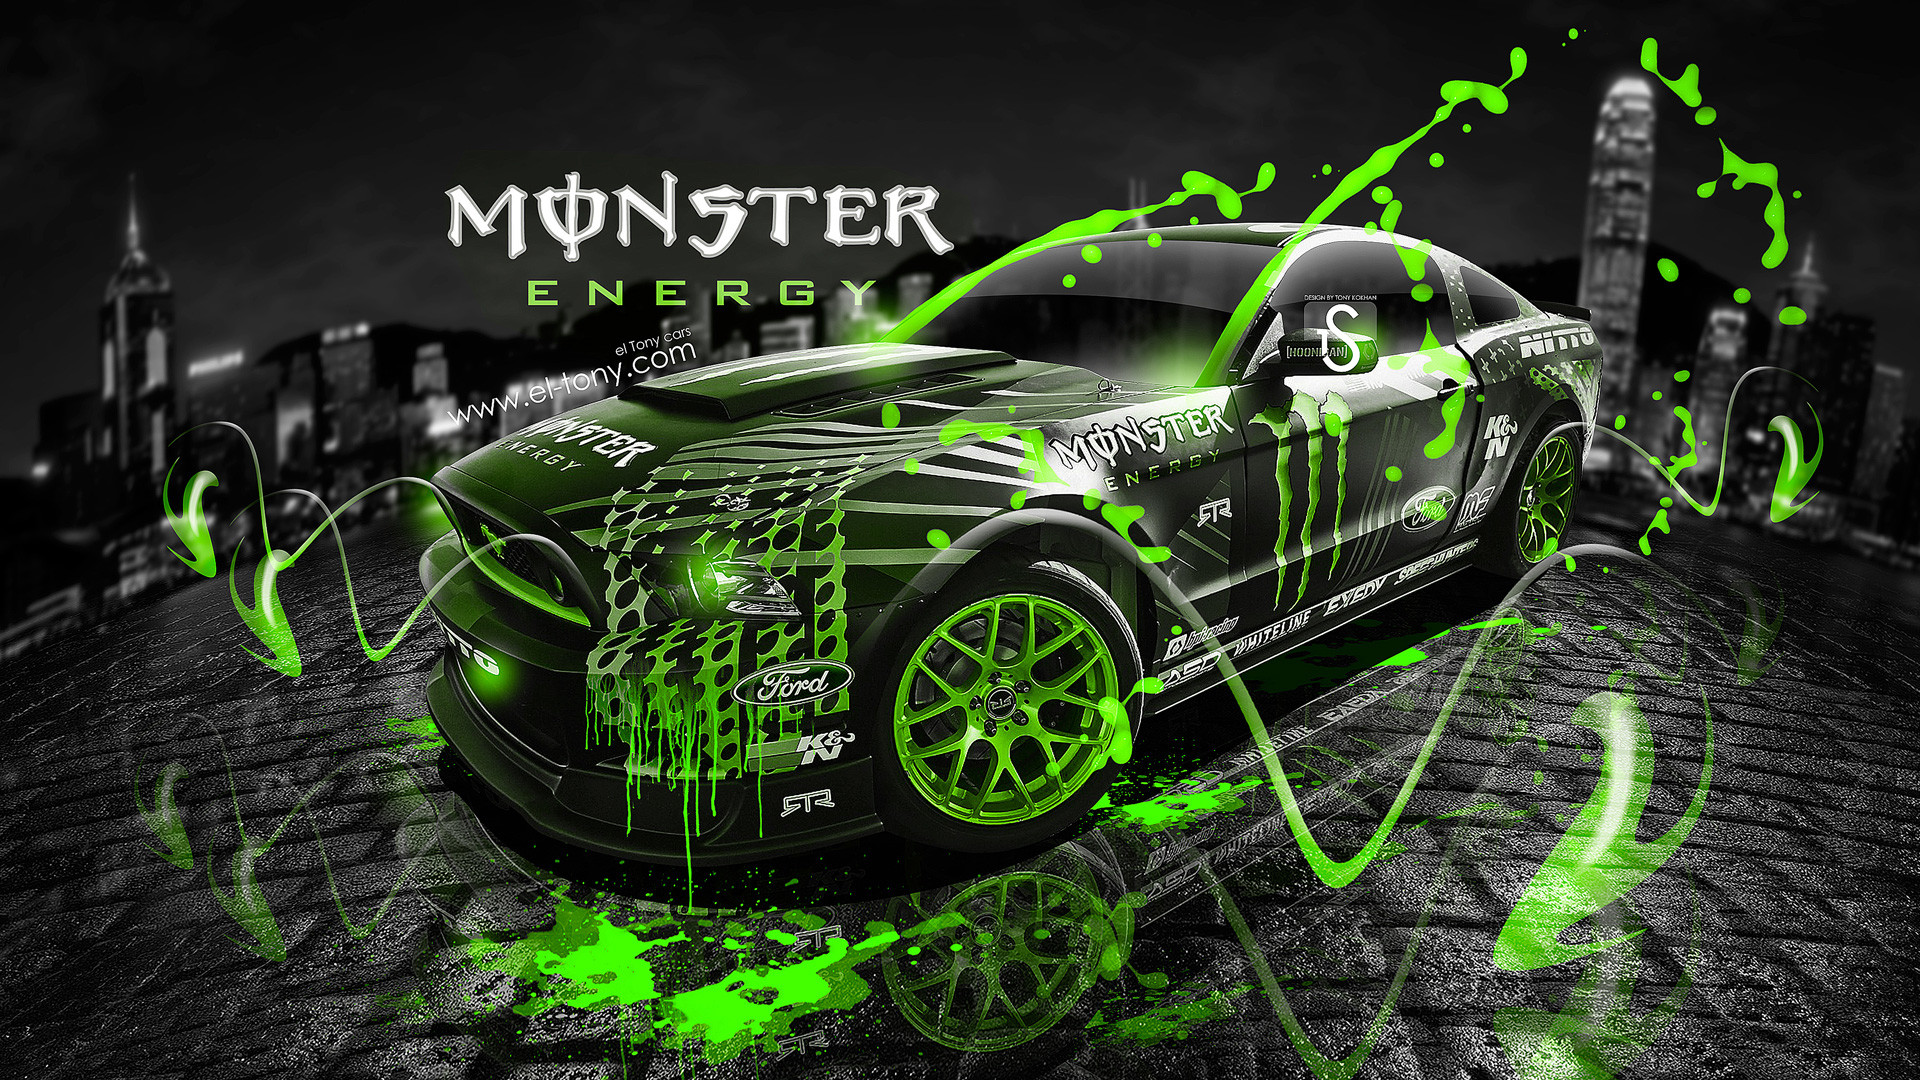 Mustang Car Wallpapers Download 11 Awesome Hd Car Burnout Wallpapers